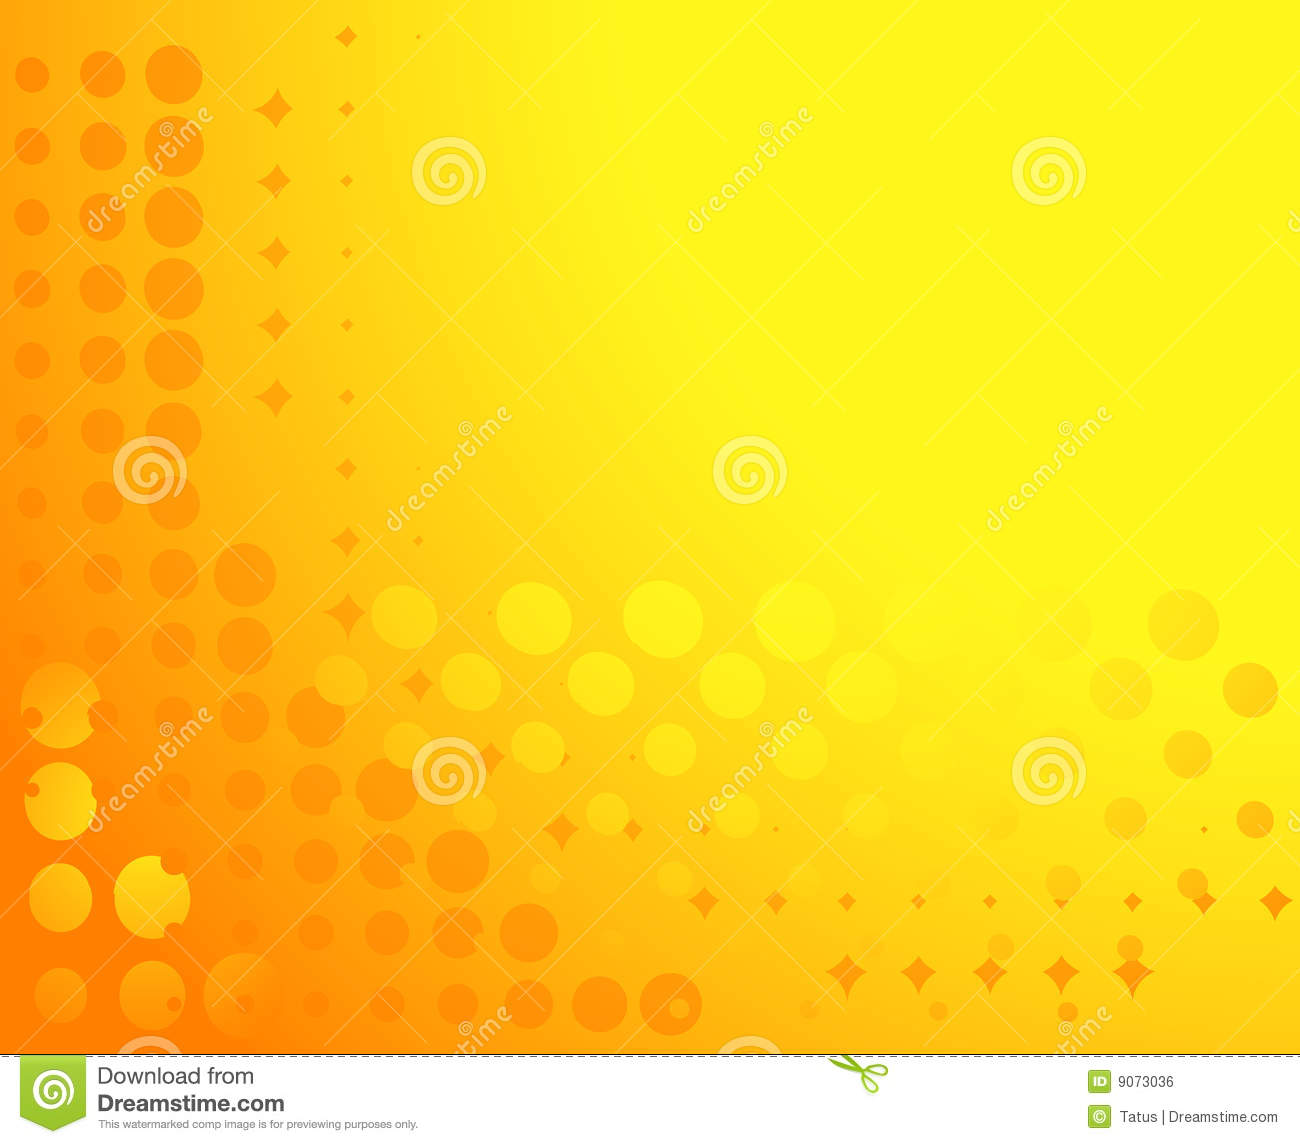 3d Dj Wallpaper Free Download Spotted Background In Yellow Royalty Free Stock Image